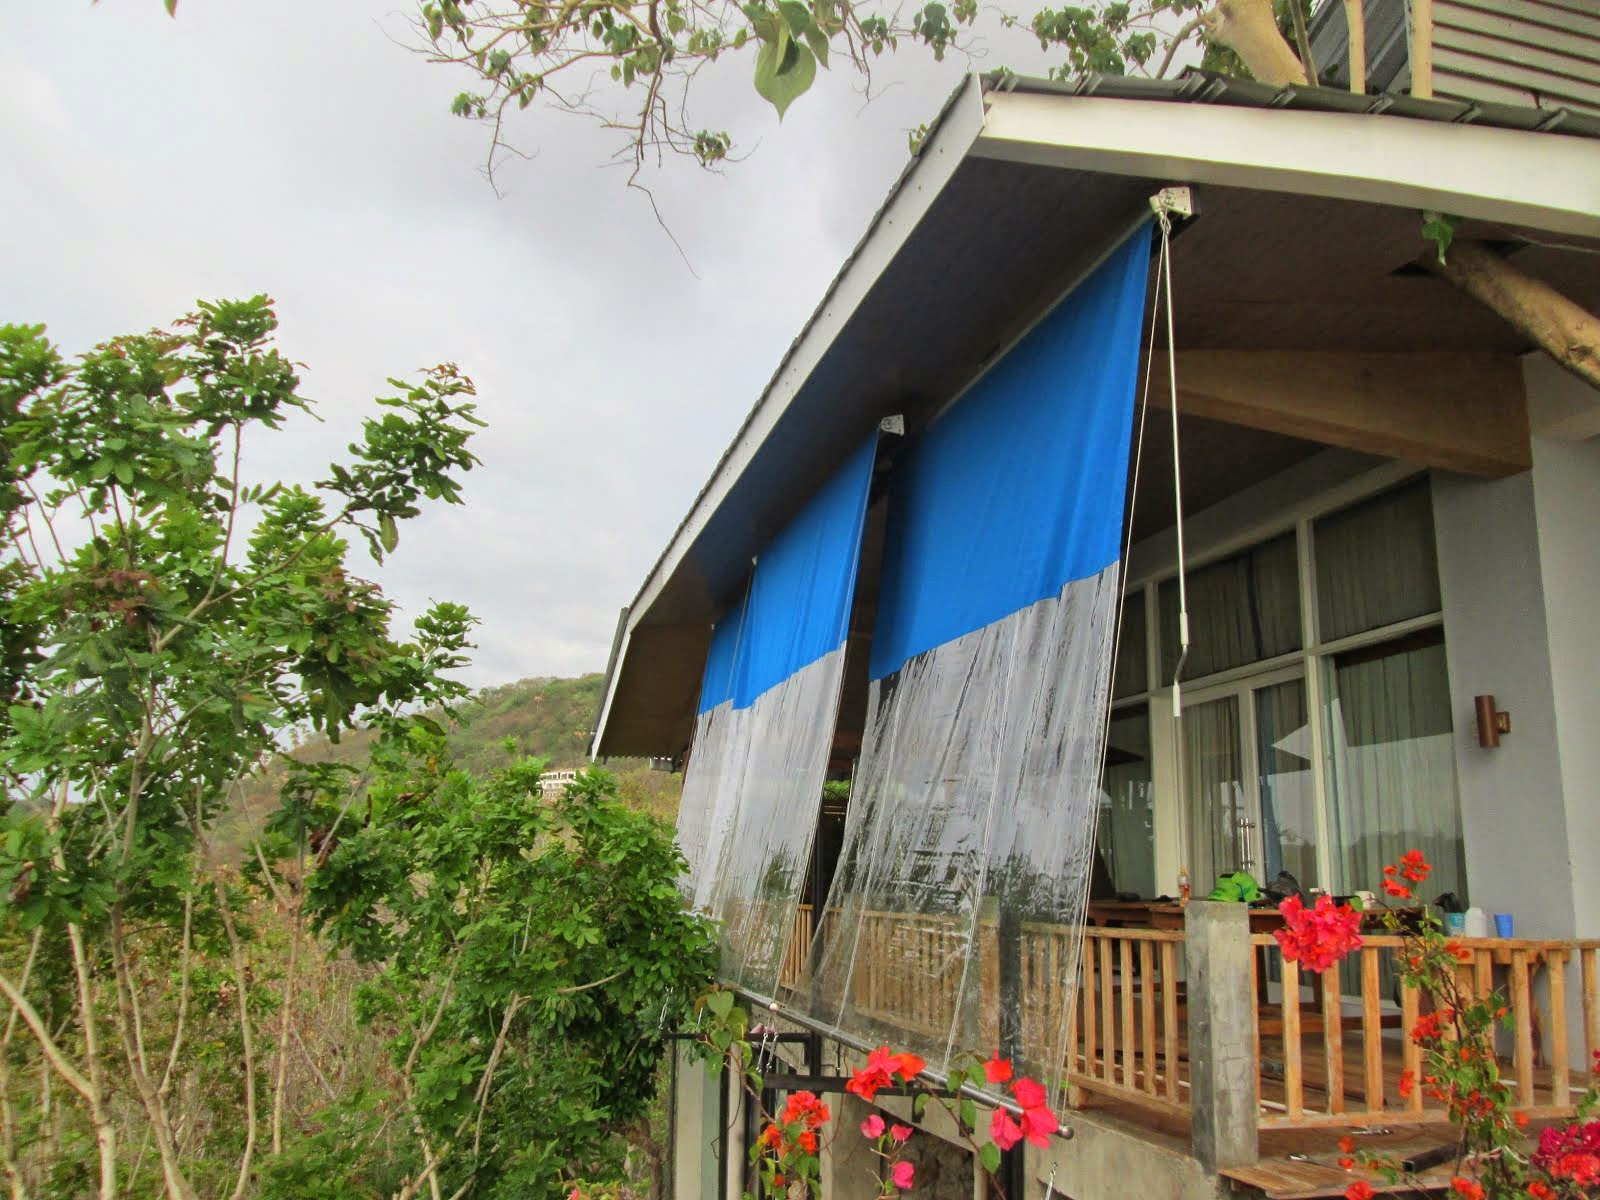 AWNING VERTICAL 08151627552